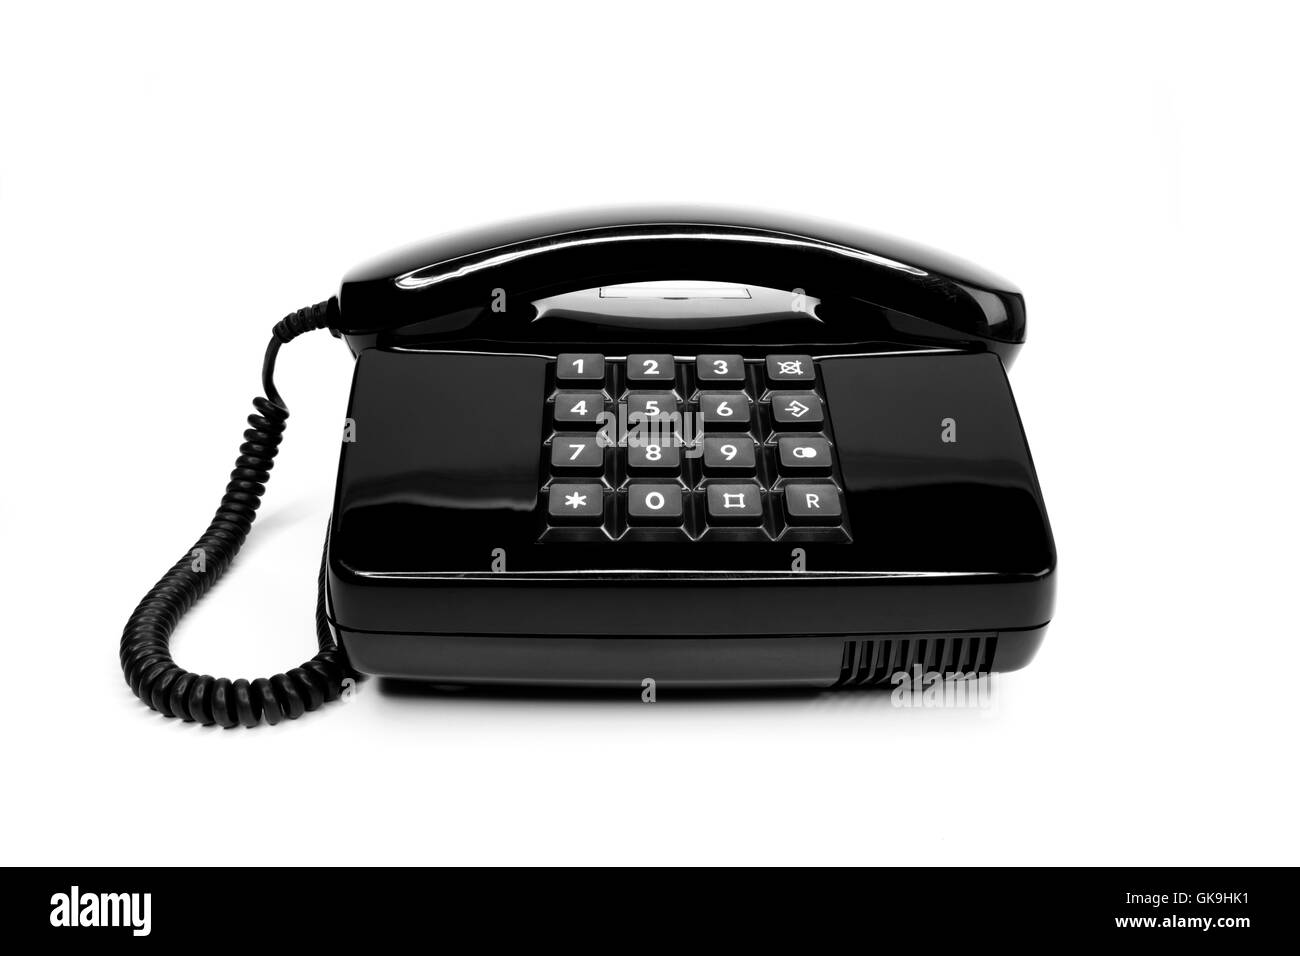 classic black telephone from the eighties - Stock Image